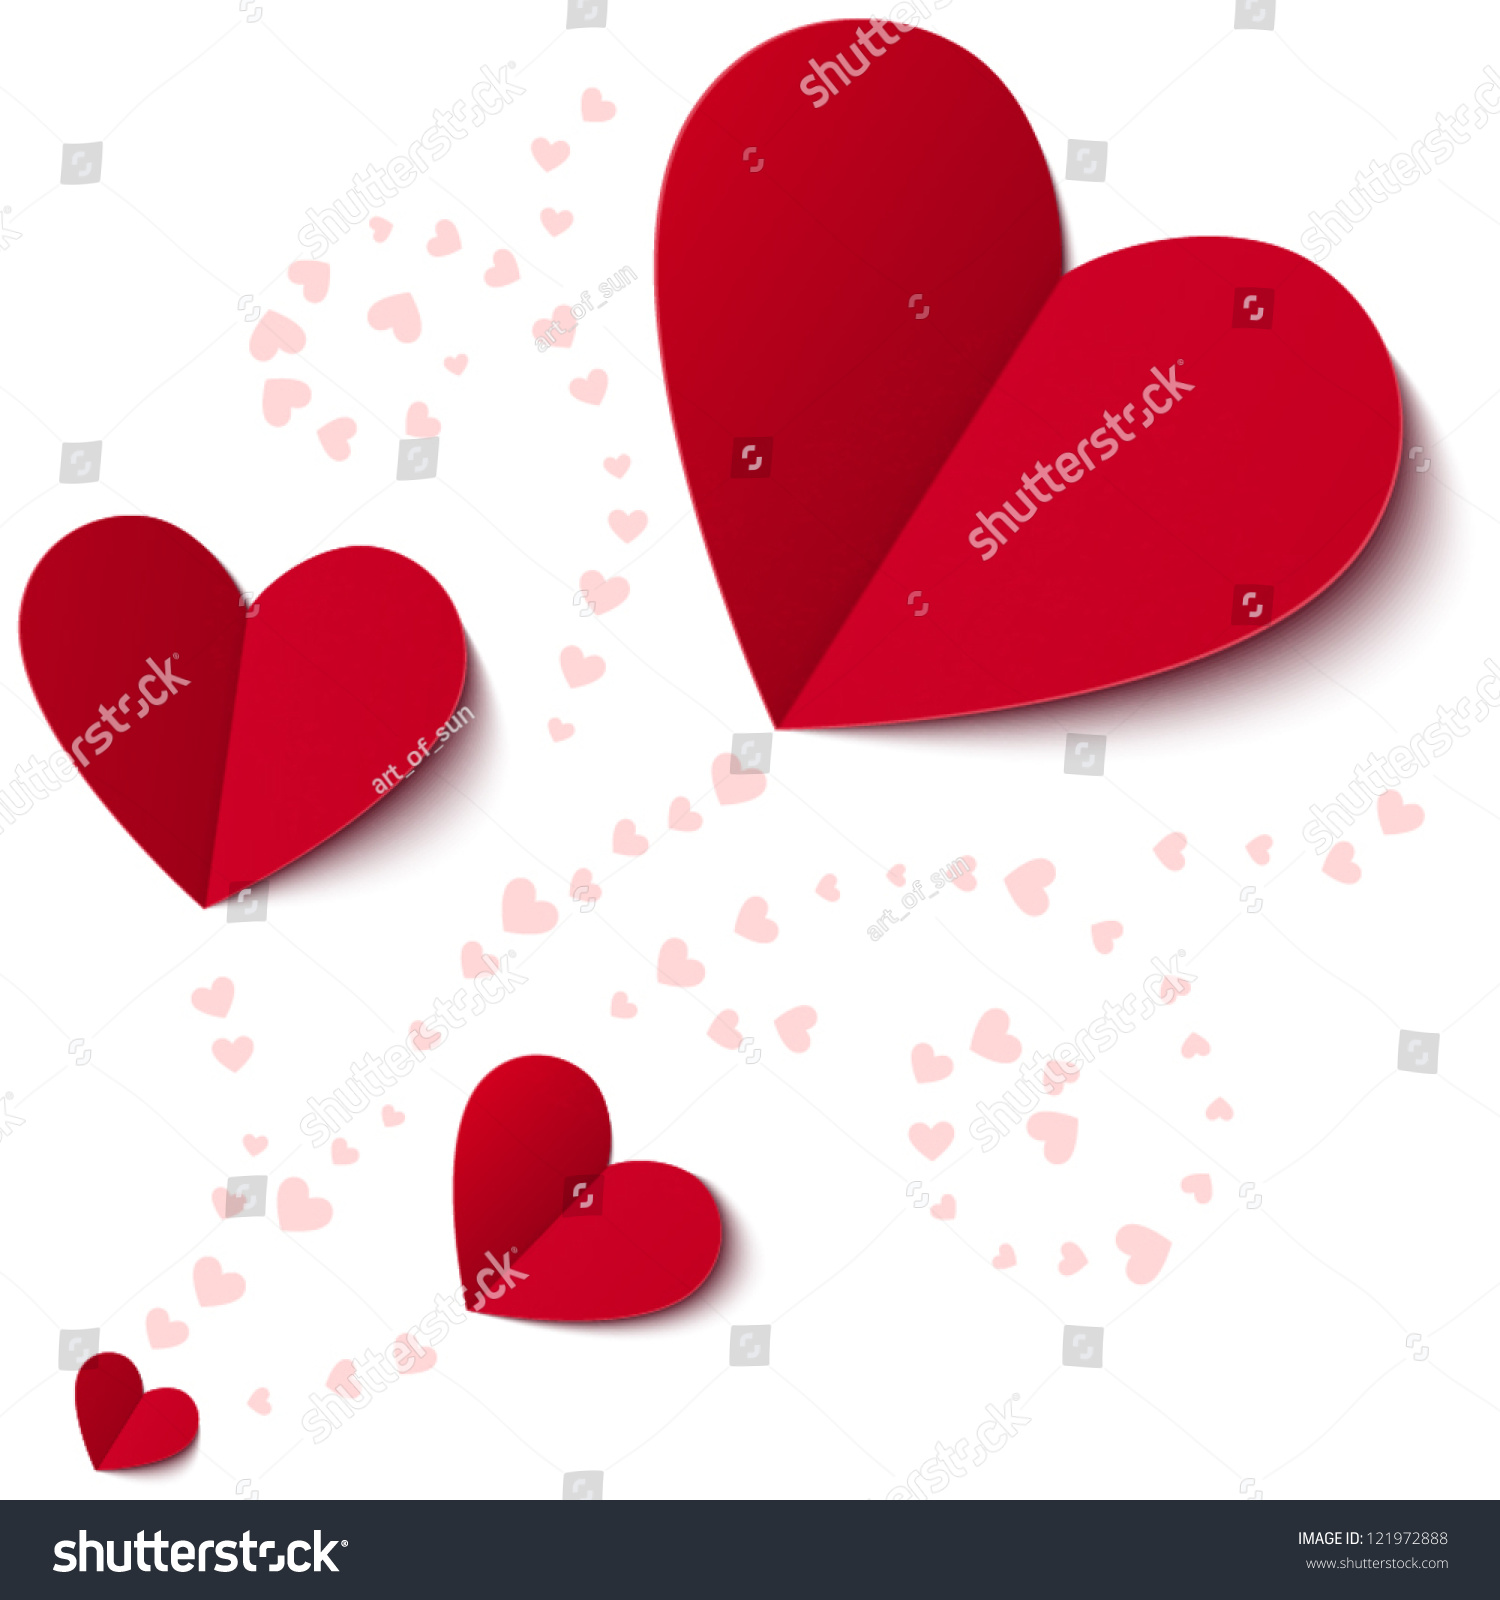 valentines essays Free essay on history of st valentine and the valentine's day holiday available totally free at echeatcom, the largest free essay community.